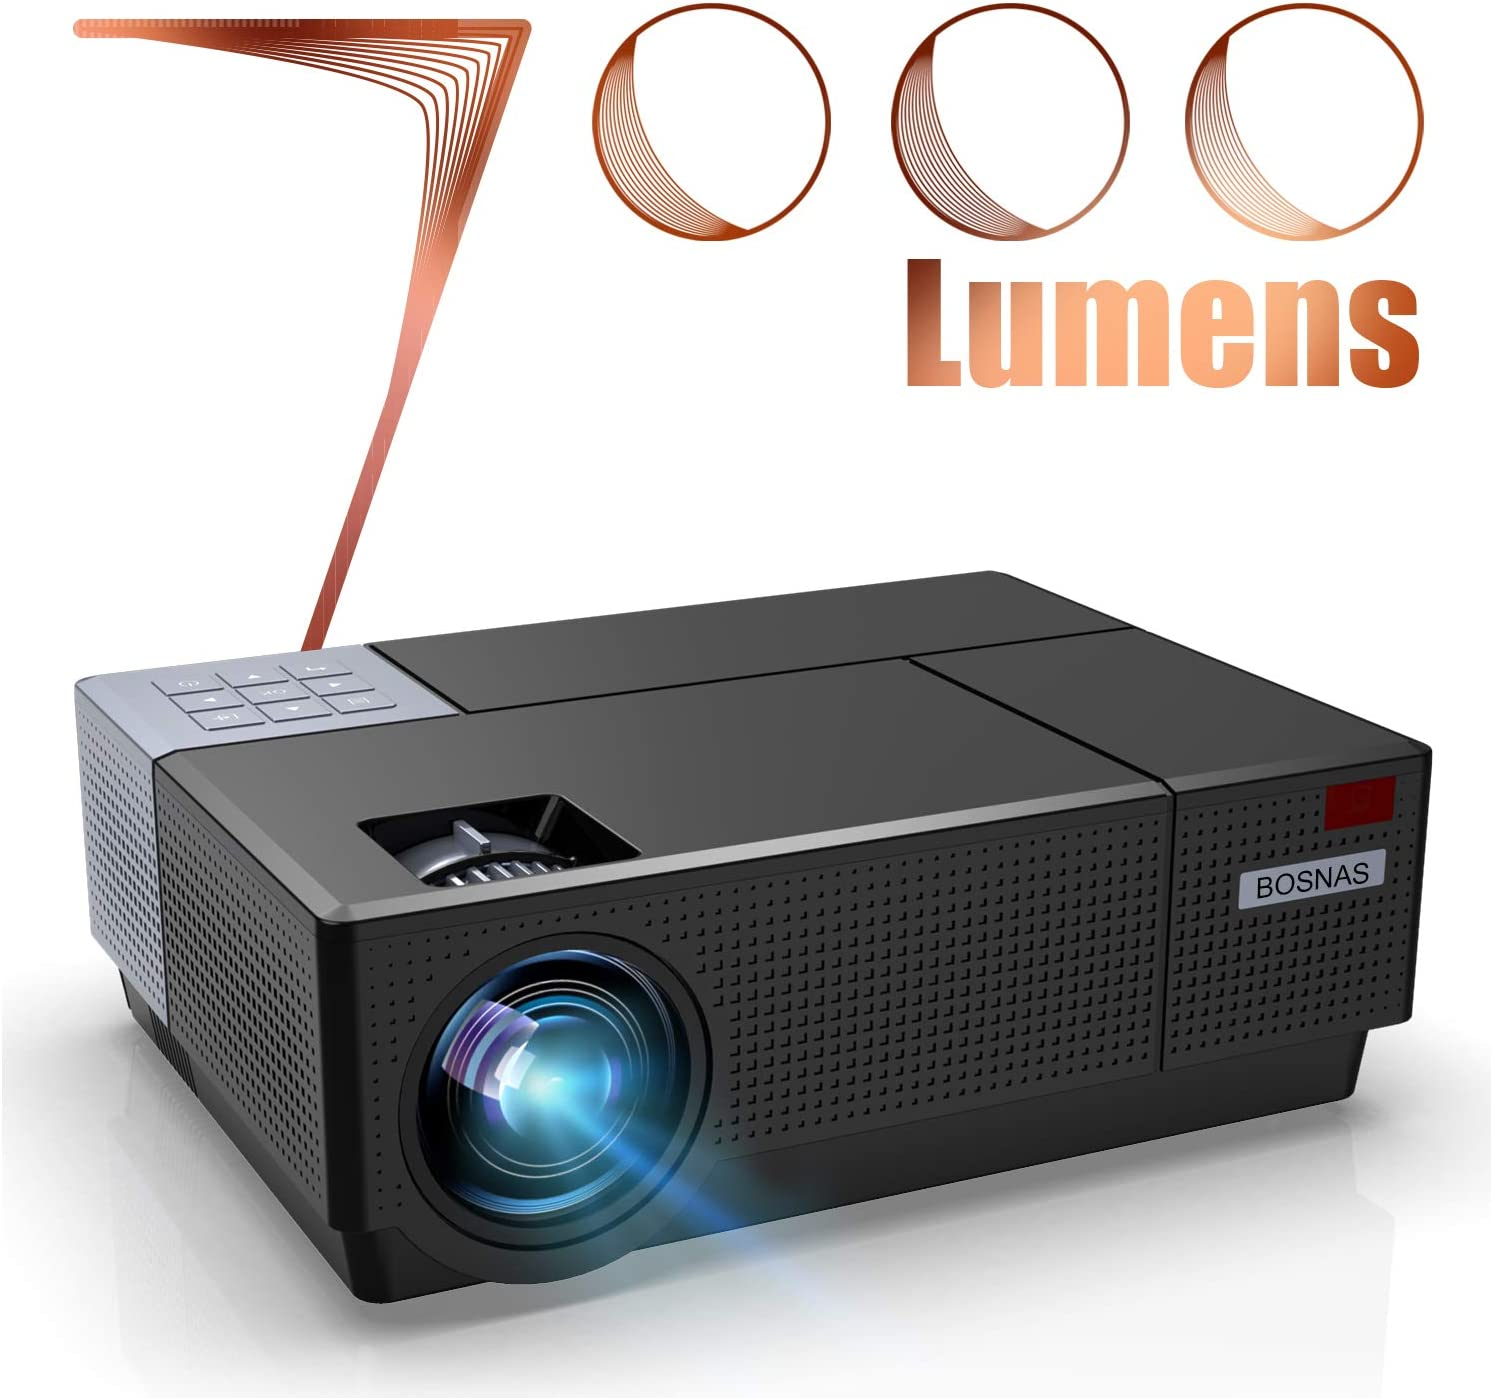 BOSNAS Projector 1080p Native 7000 Lux Supports 4K